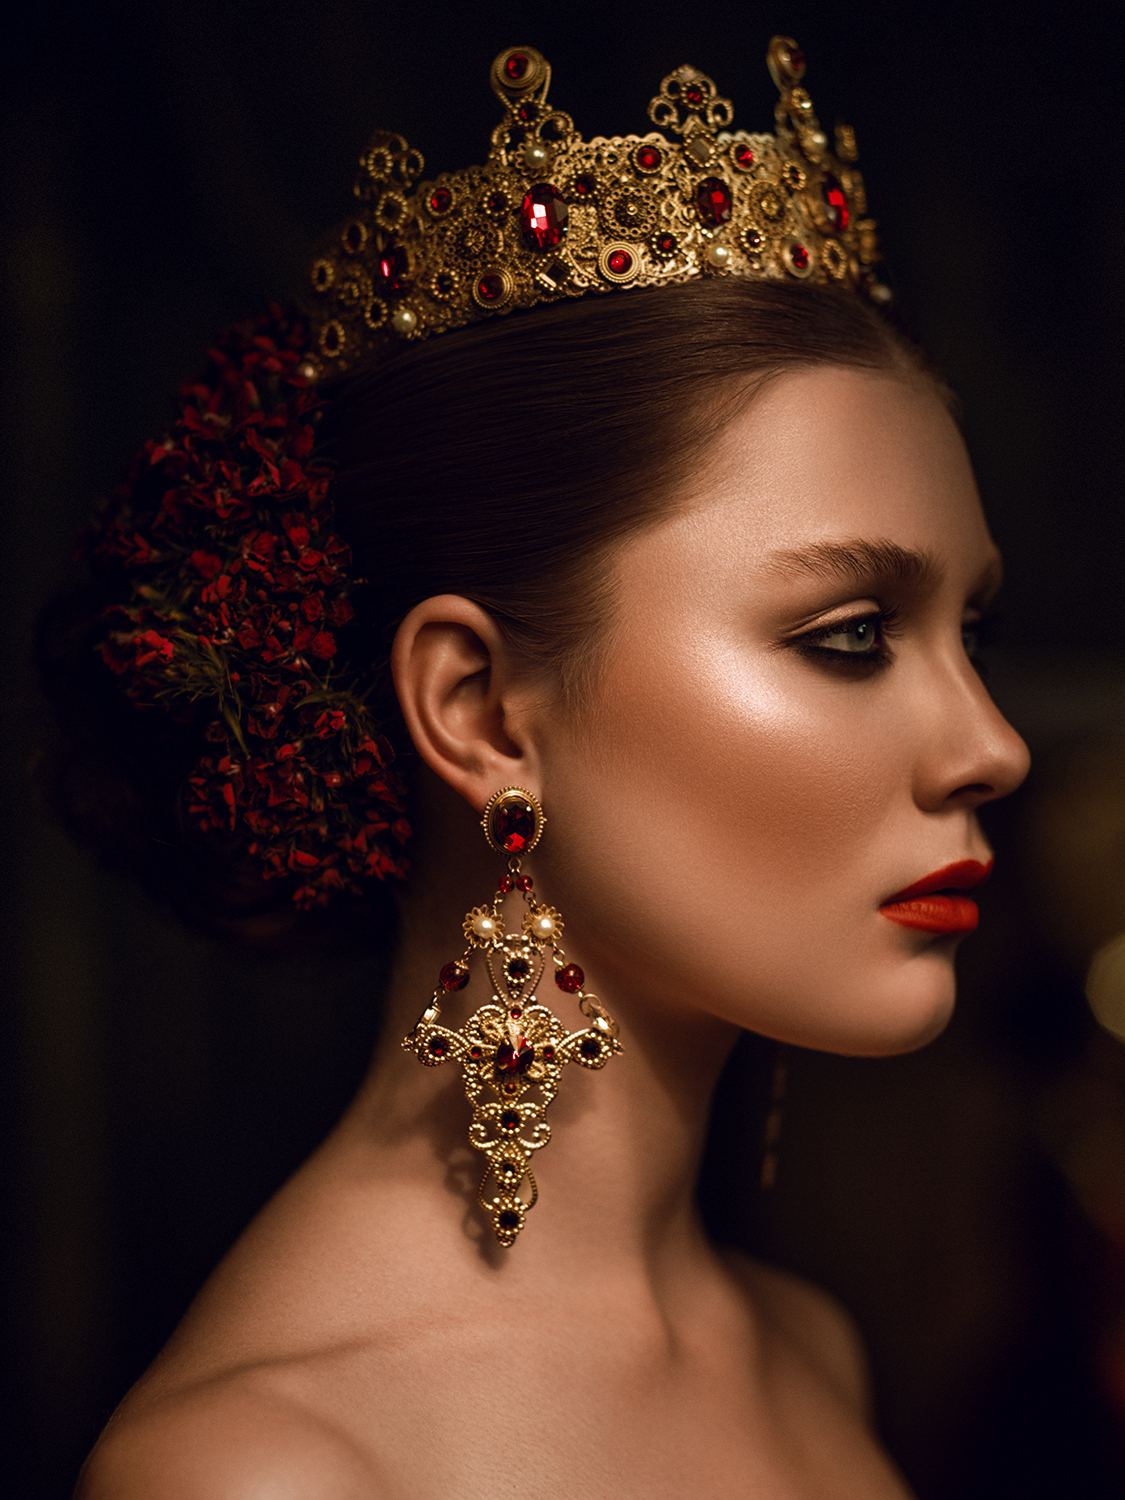 The Queen by Alex Buts - Special for Atlas Magazine